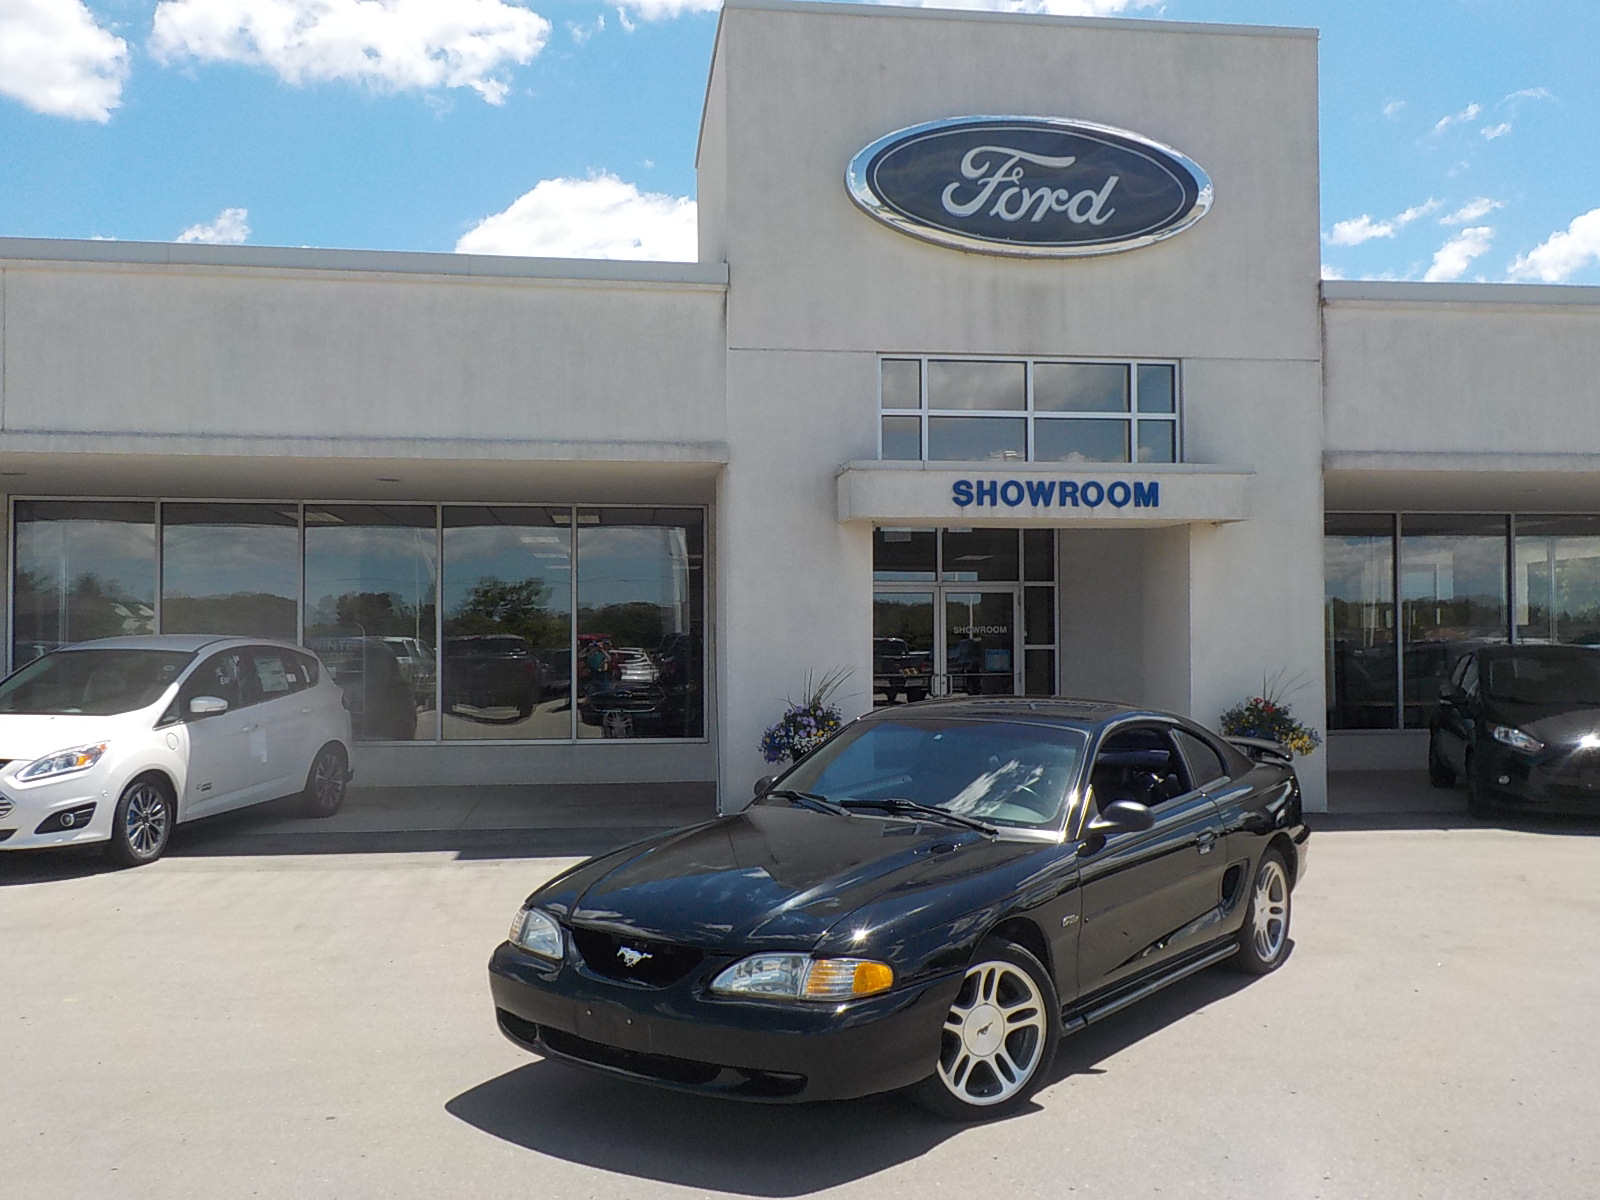 dealership sales parts westview columbia appointment slider off service british ford in first now june book dealer courtenay